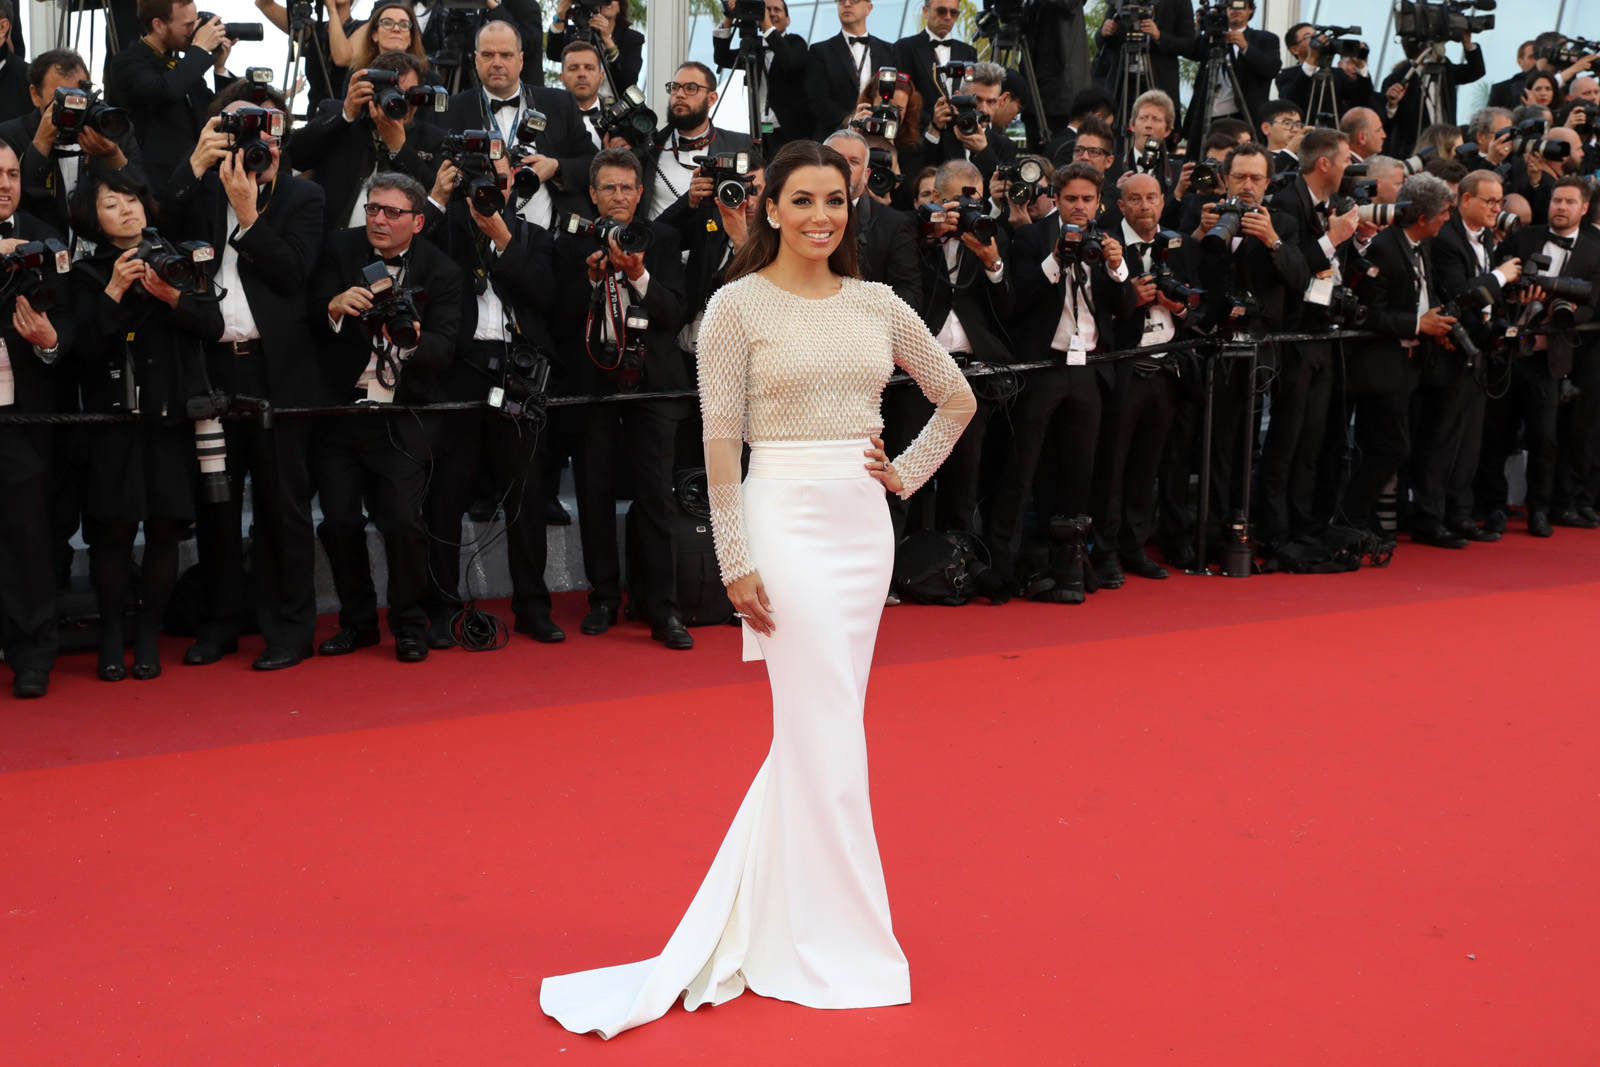 """CANNES, FRANCE - MAY 11: Eva Longoria attends the """"Cafe Society"""" premiere and the Opening Night Gala during the 69th annual Cannes Film Festival at the Palais des Festivals on May 11, 2016 in Cannes, France.  (Photo by Neilson Barnard/Getty Images)"""